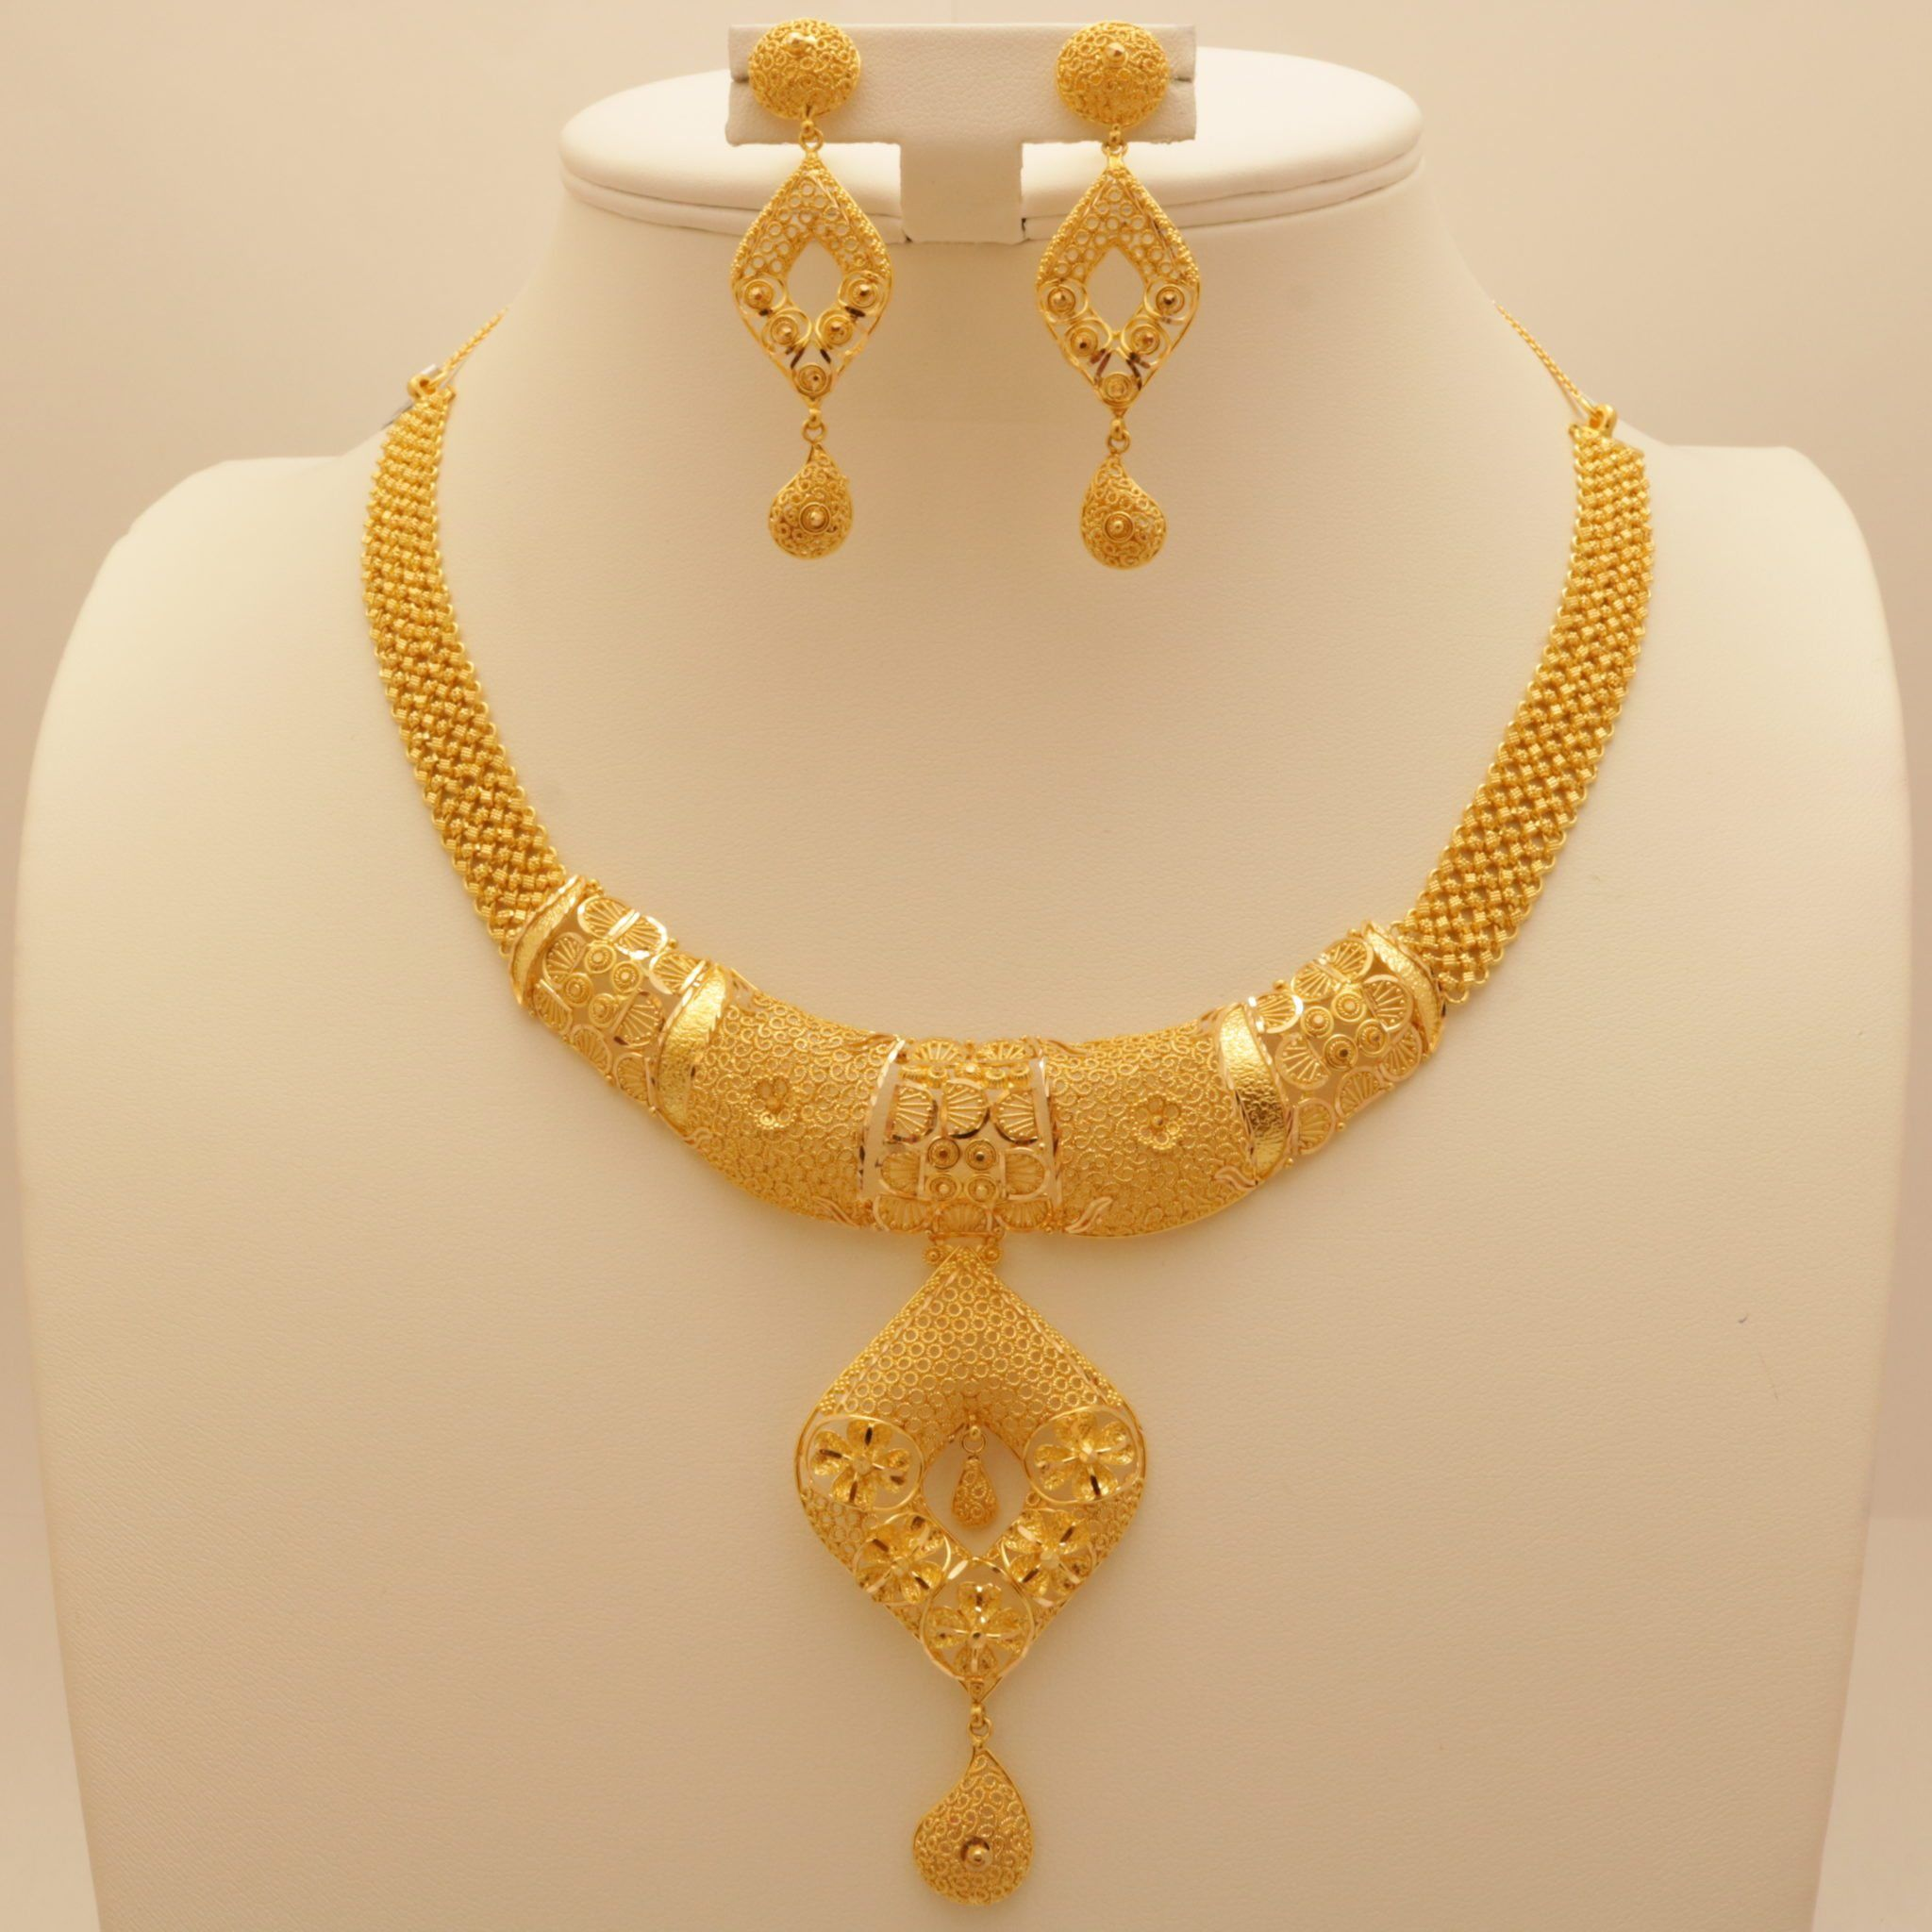 Ns0051front Jpg 2048 2048 Gold Necklace Designs Gold Necklace Set Pure Gold Jewellery